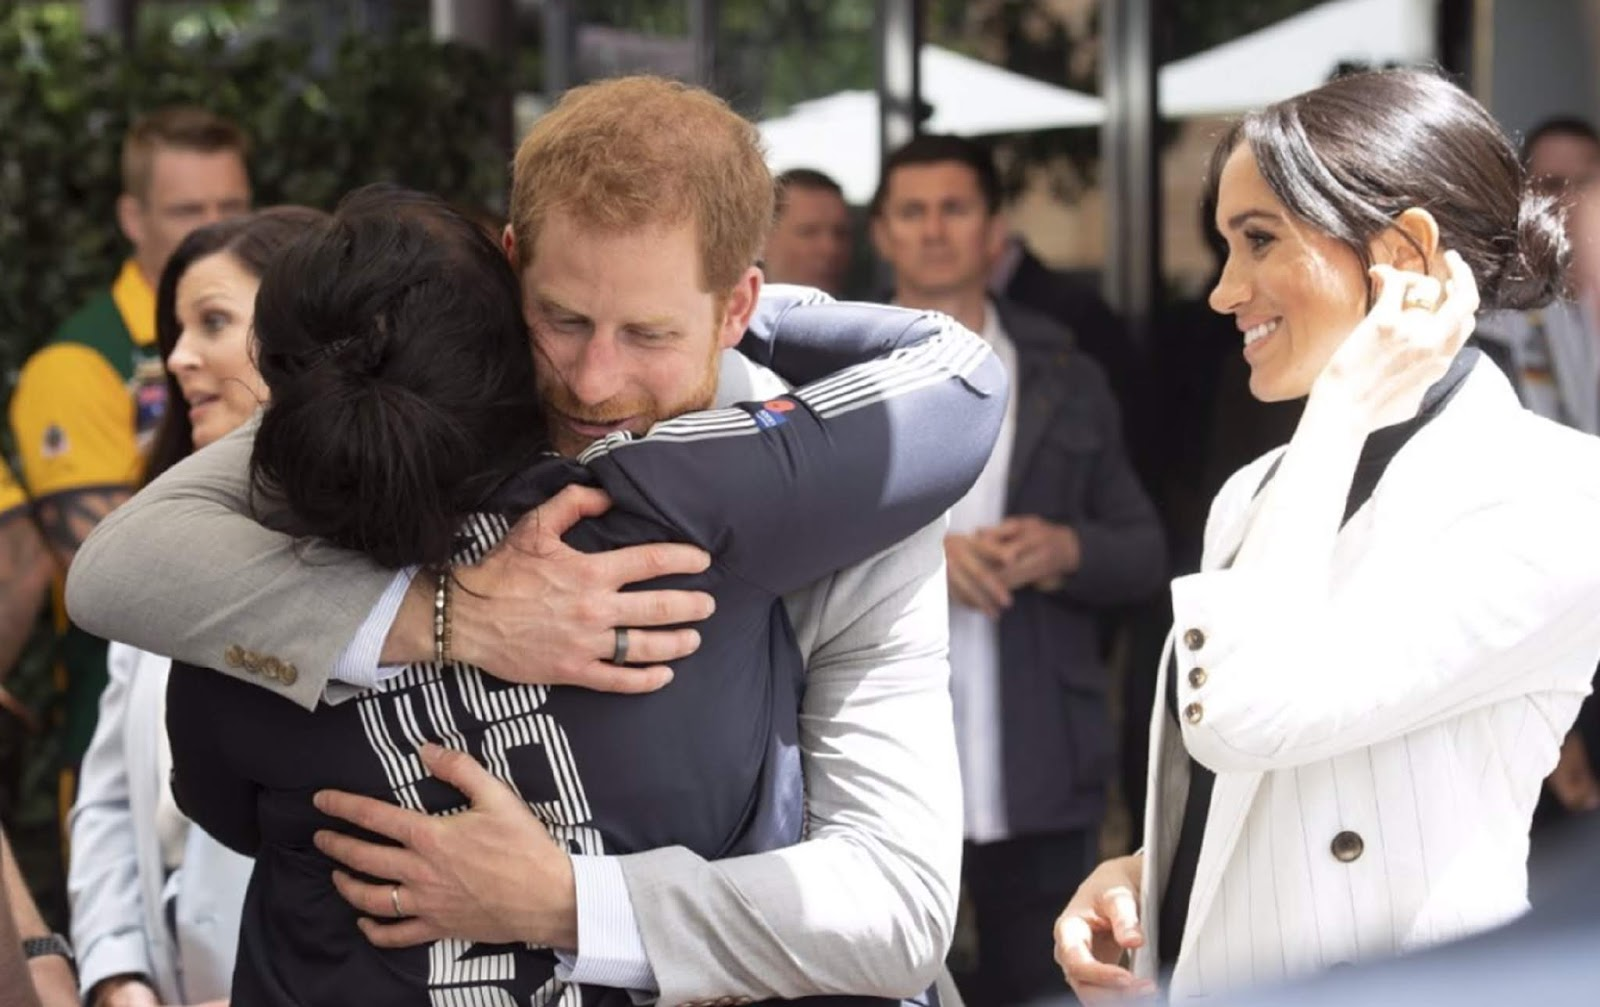 PRINCE HARRY, MEGHAN MARKLE 2